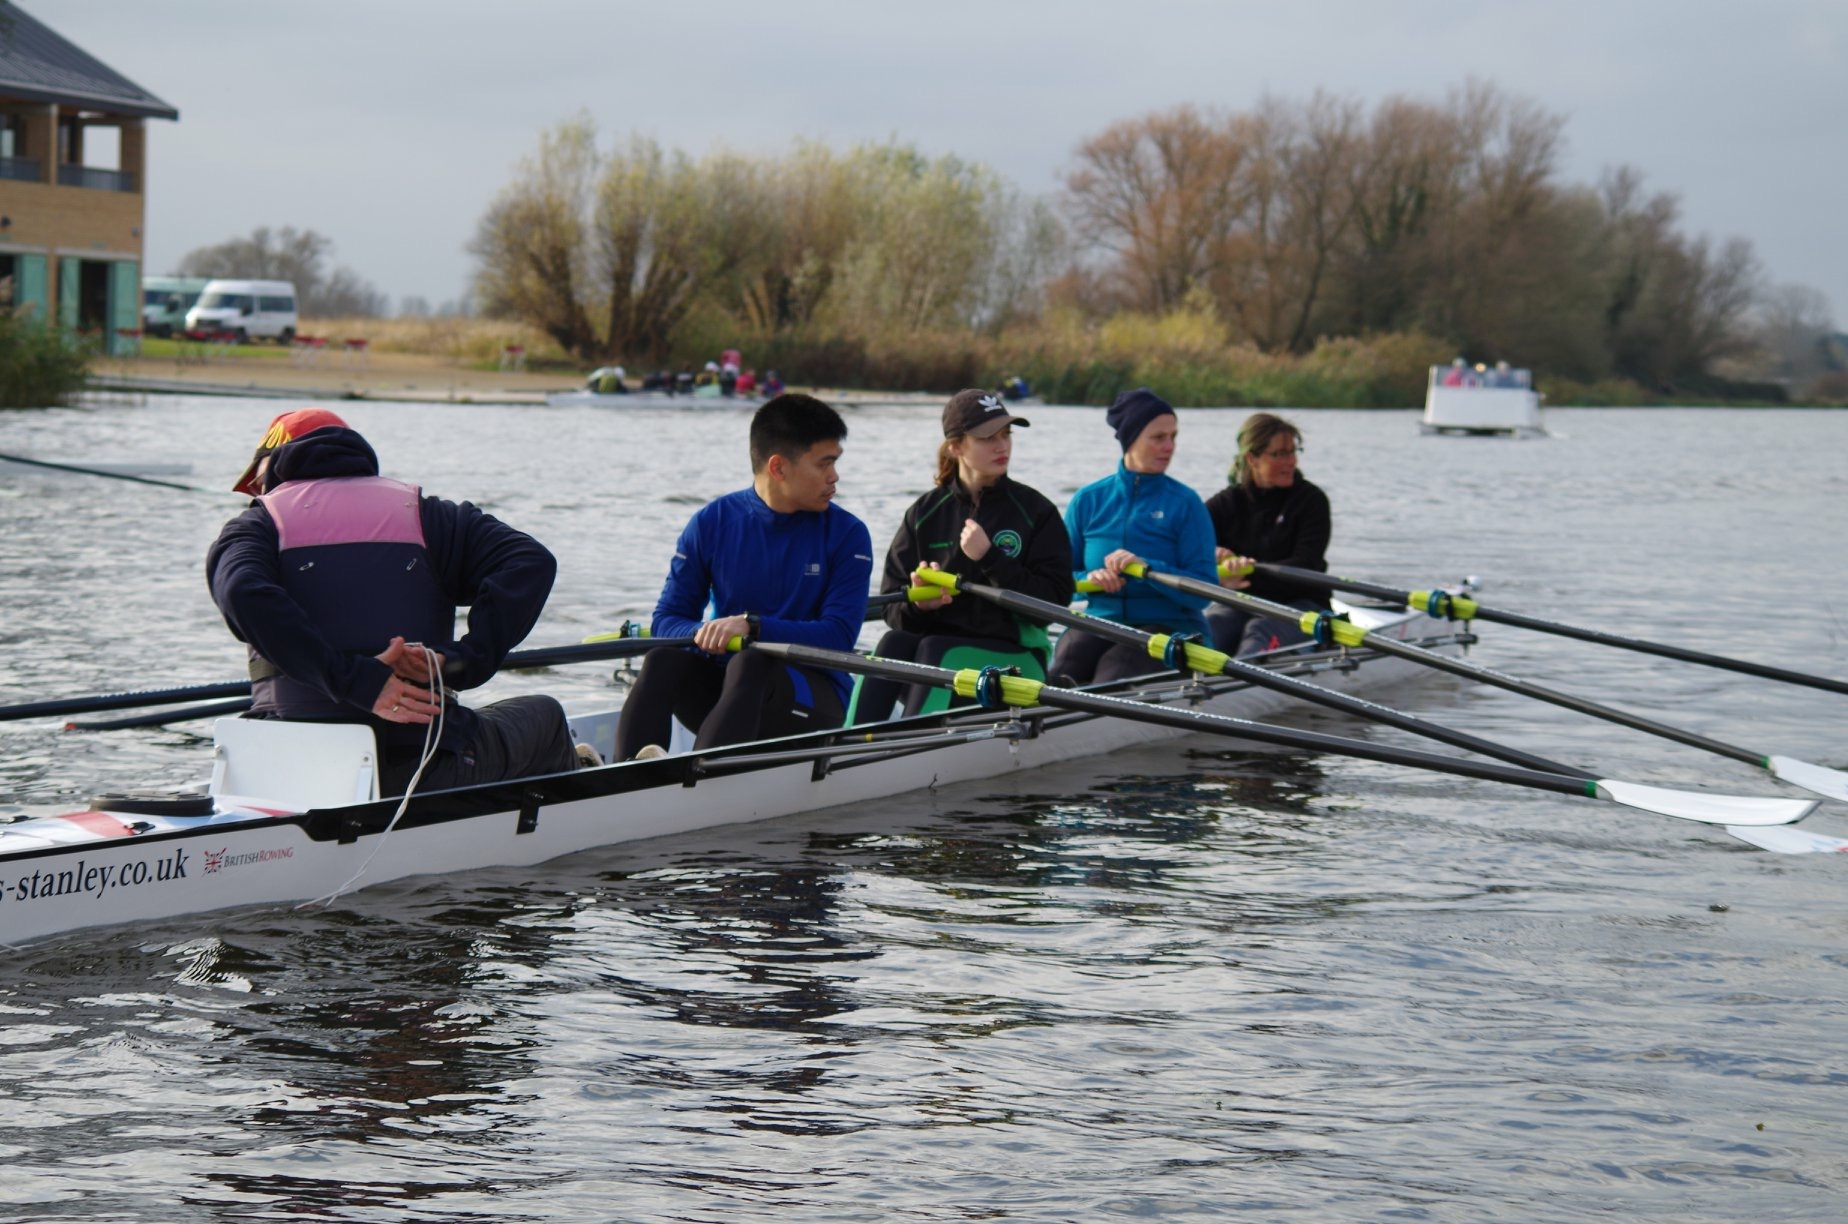 MKRC Development squad racing at Ely